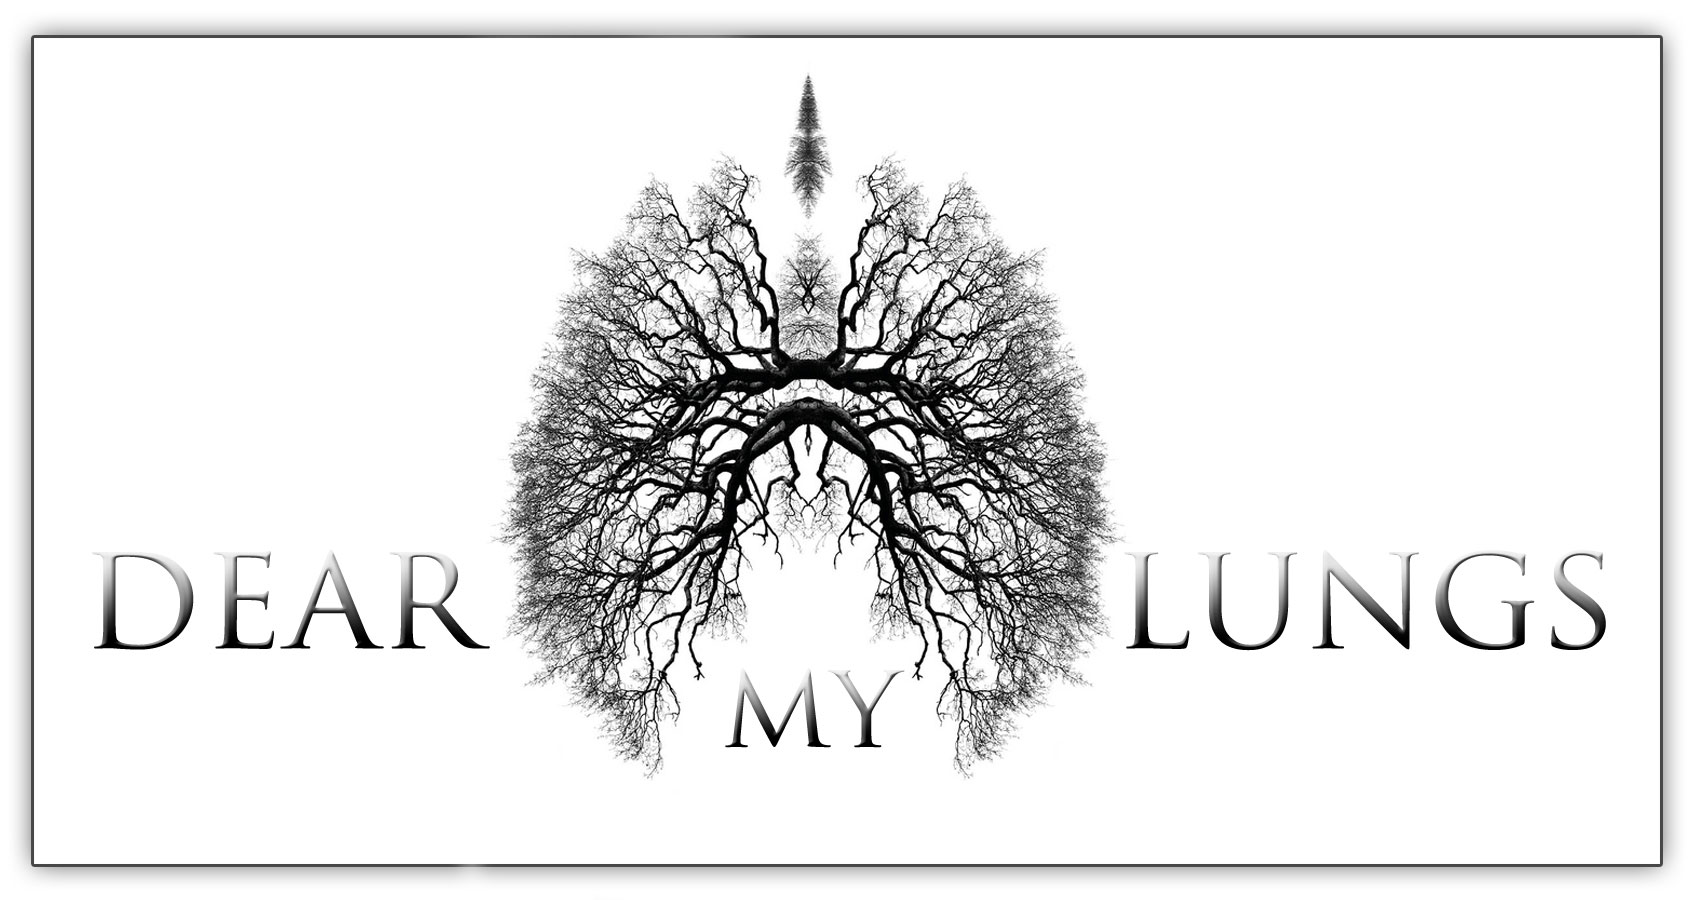 Dear My Lungs by K.D. Rose at Spillwords.com